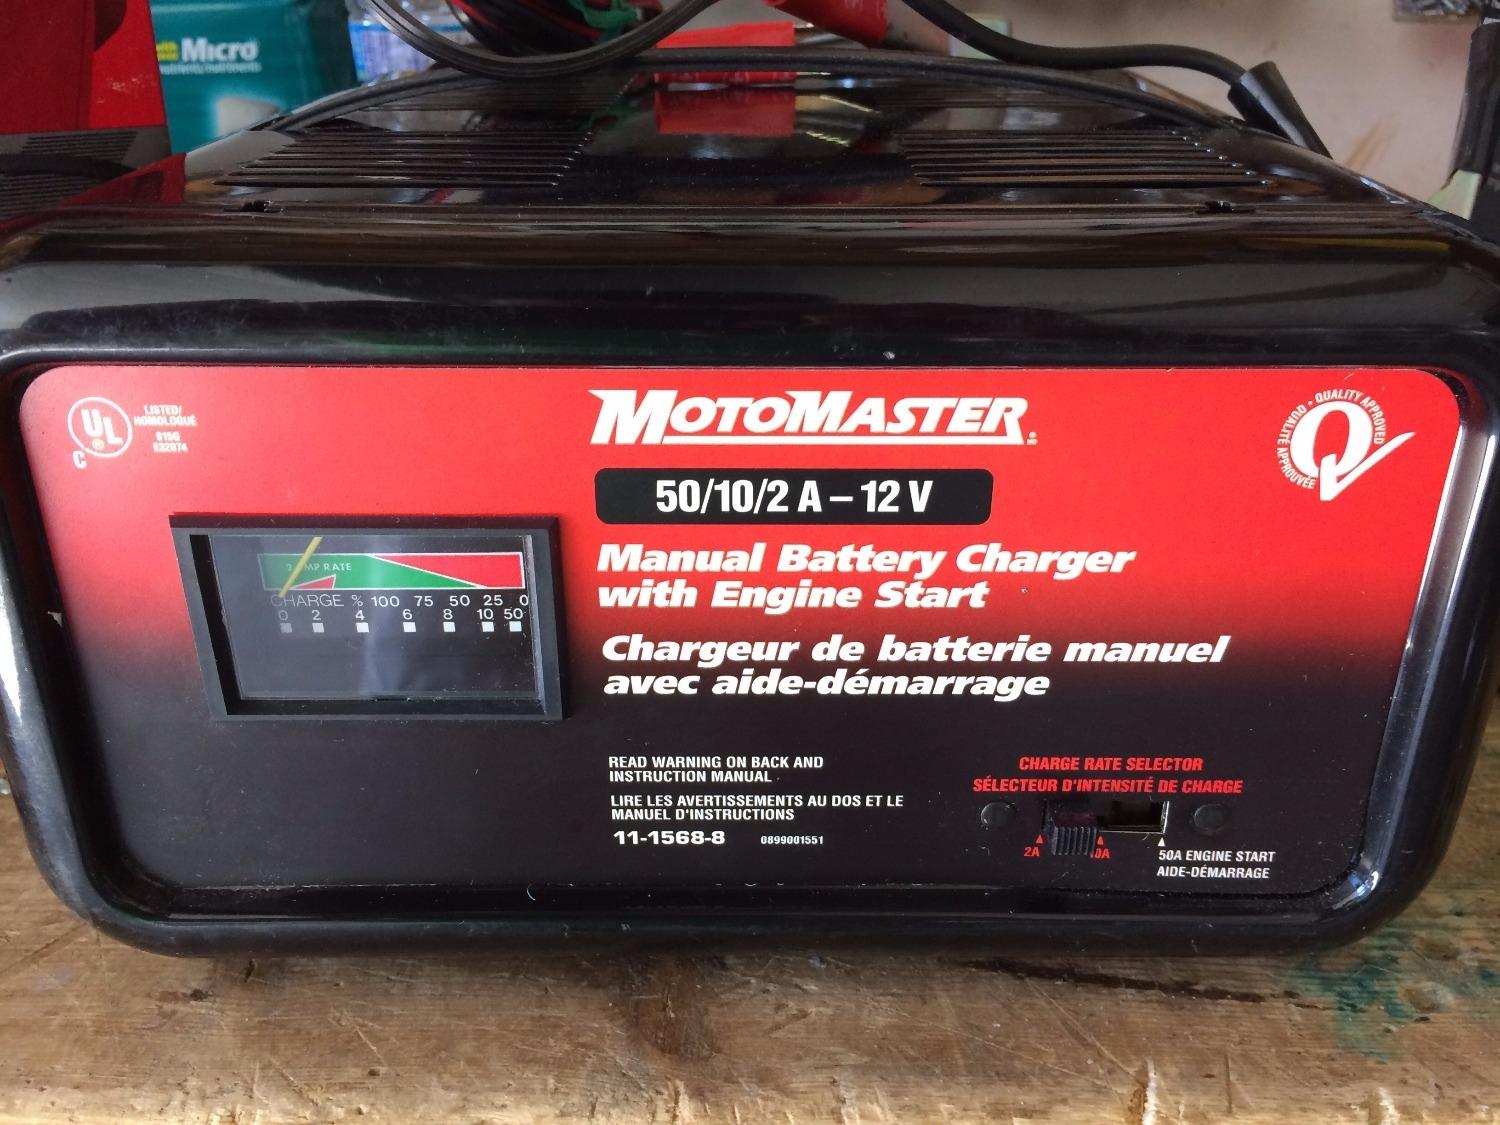 Find more Motomaster 50/10/2a - 12v Manual Battery Charger for sale at up  to 90% off